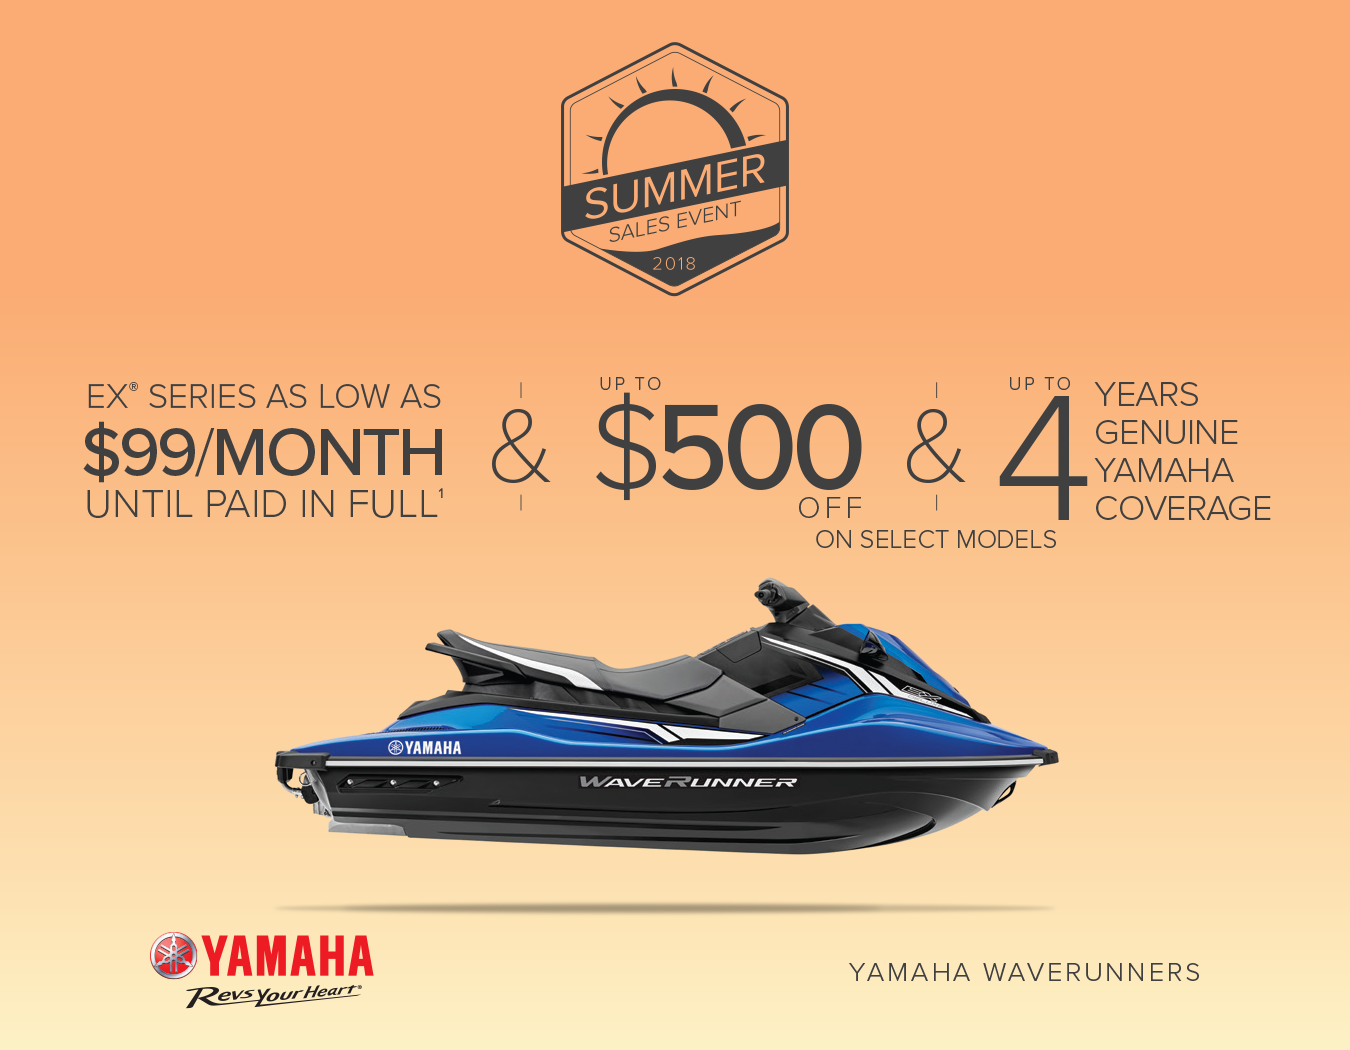 Yamaha Waverunner Summer Sales Event 2018